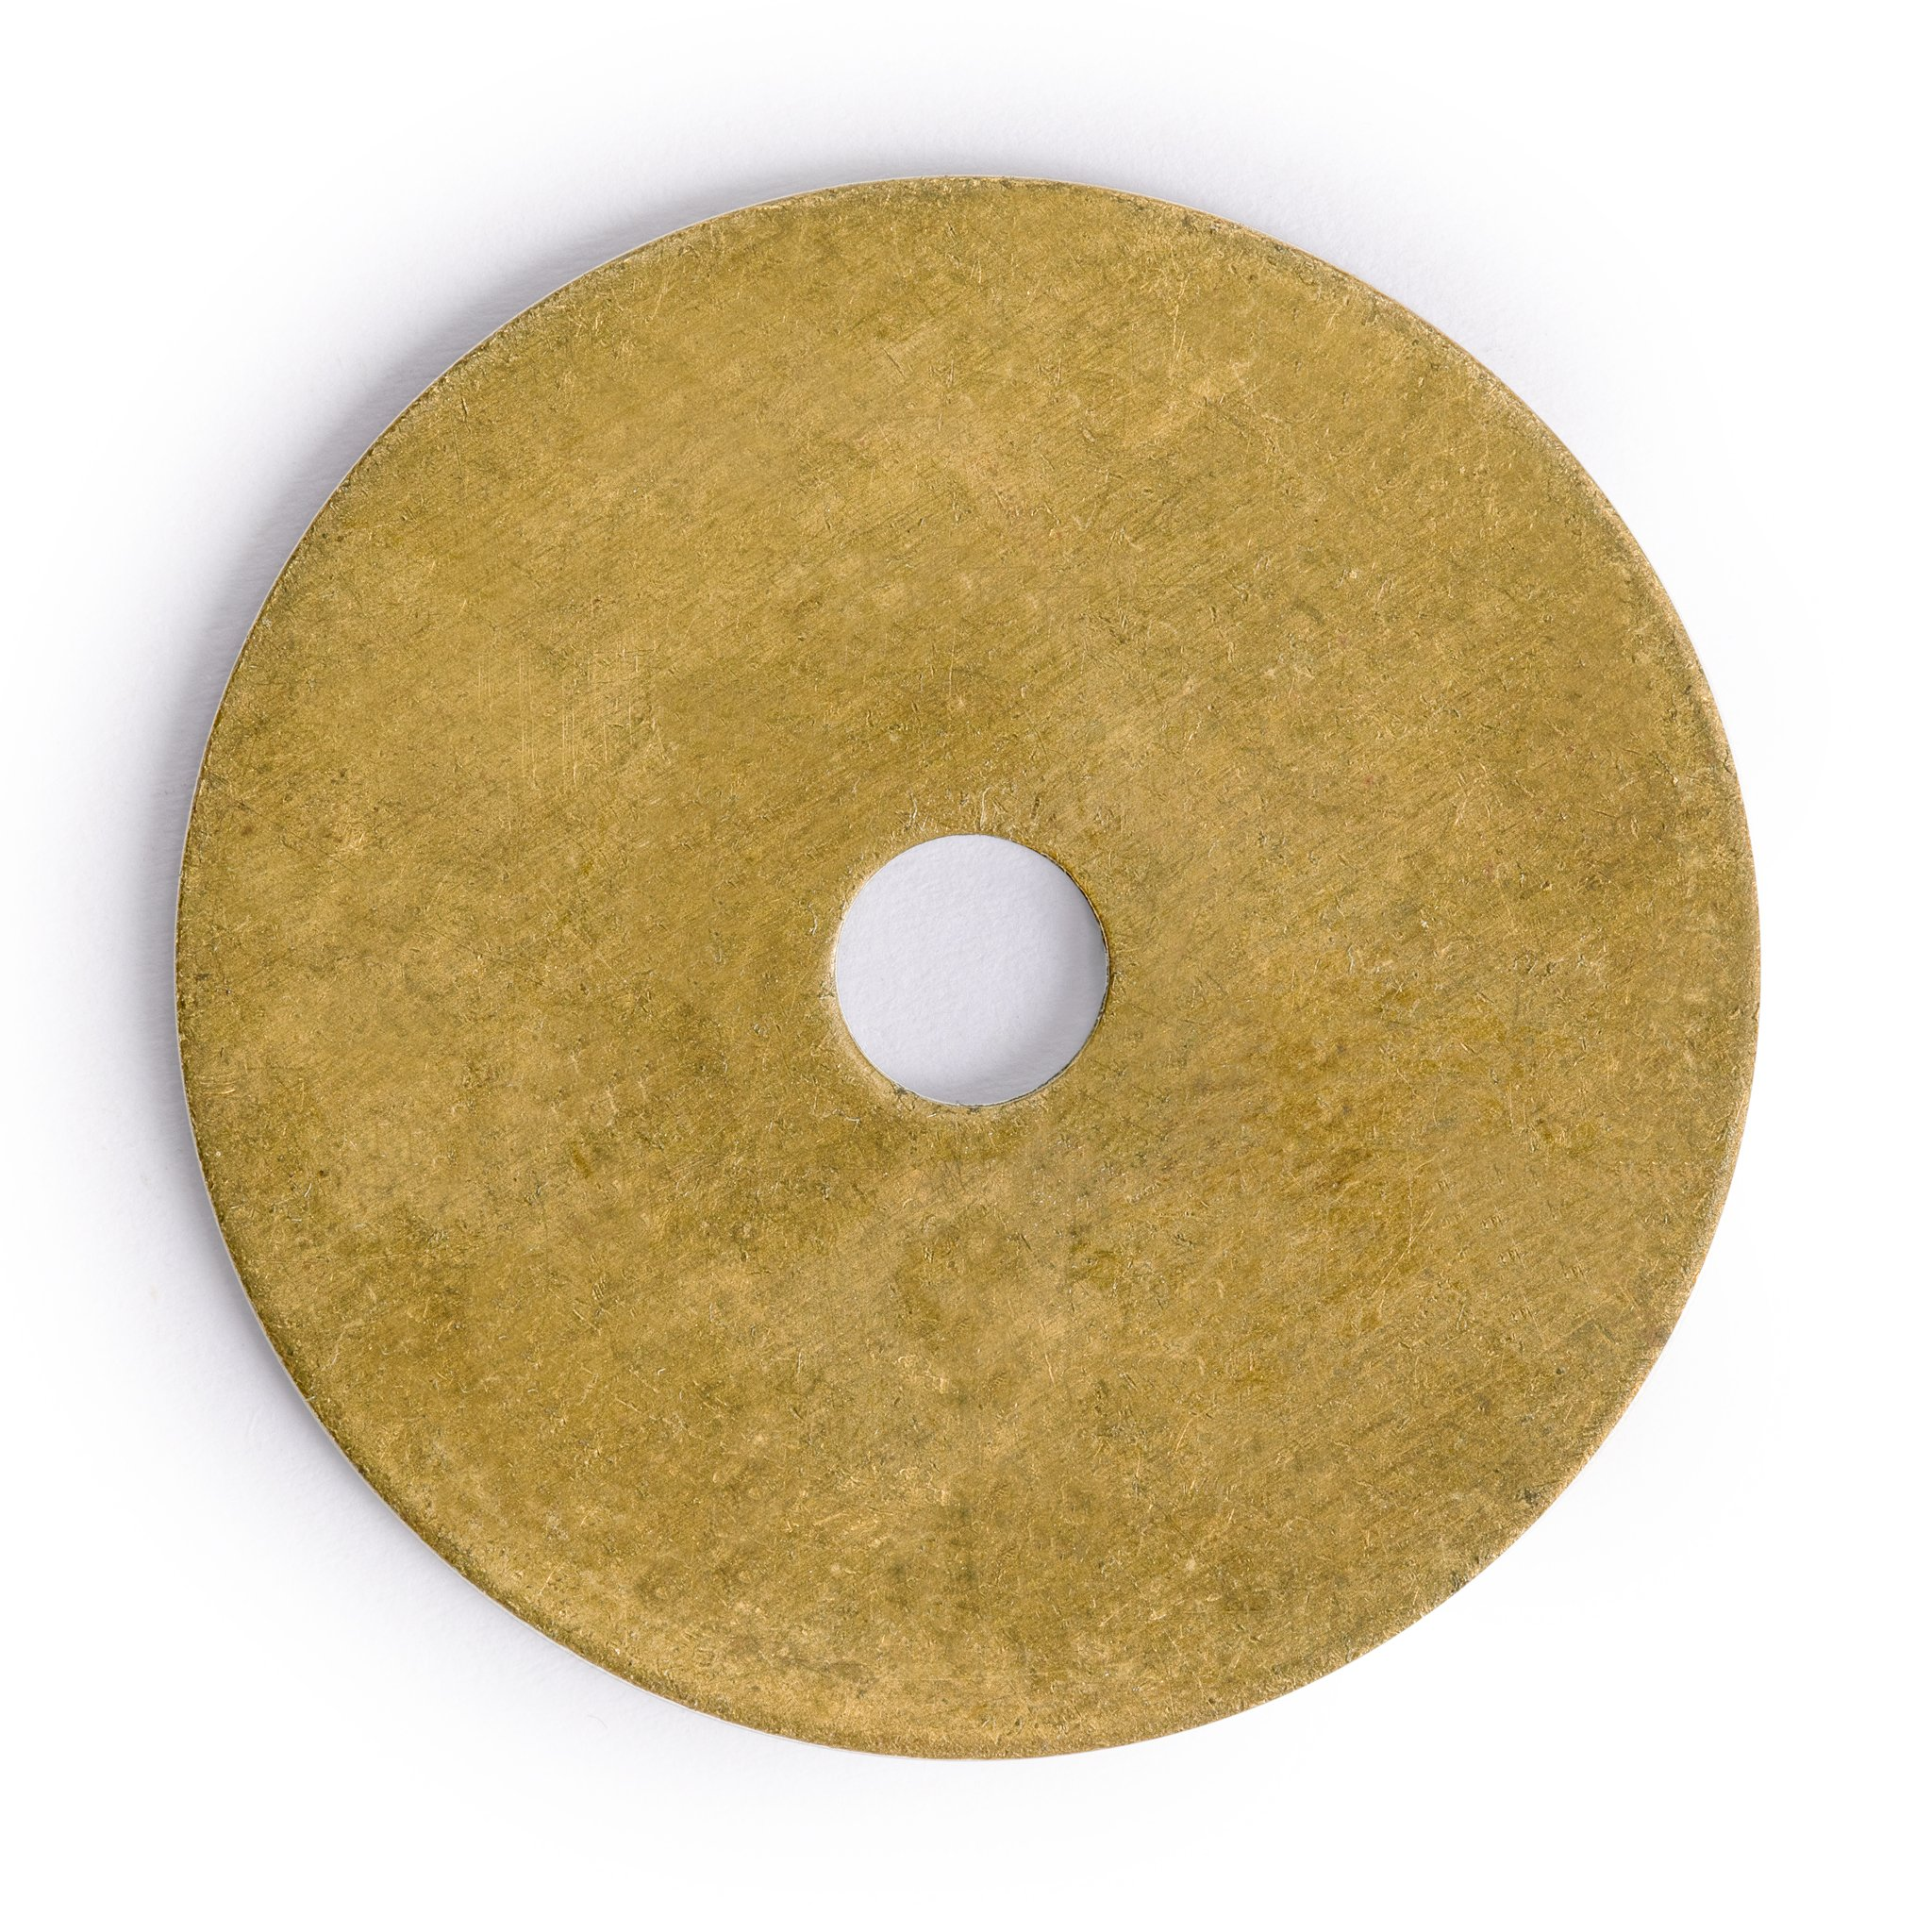 Plain Round Washers 1.1'' - Set of 10